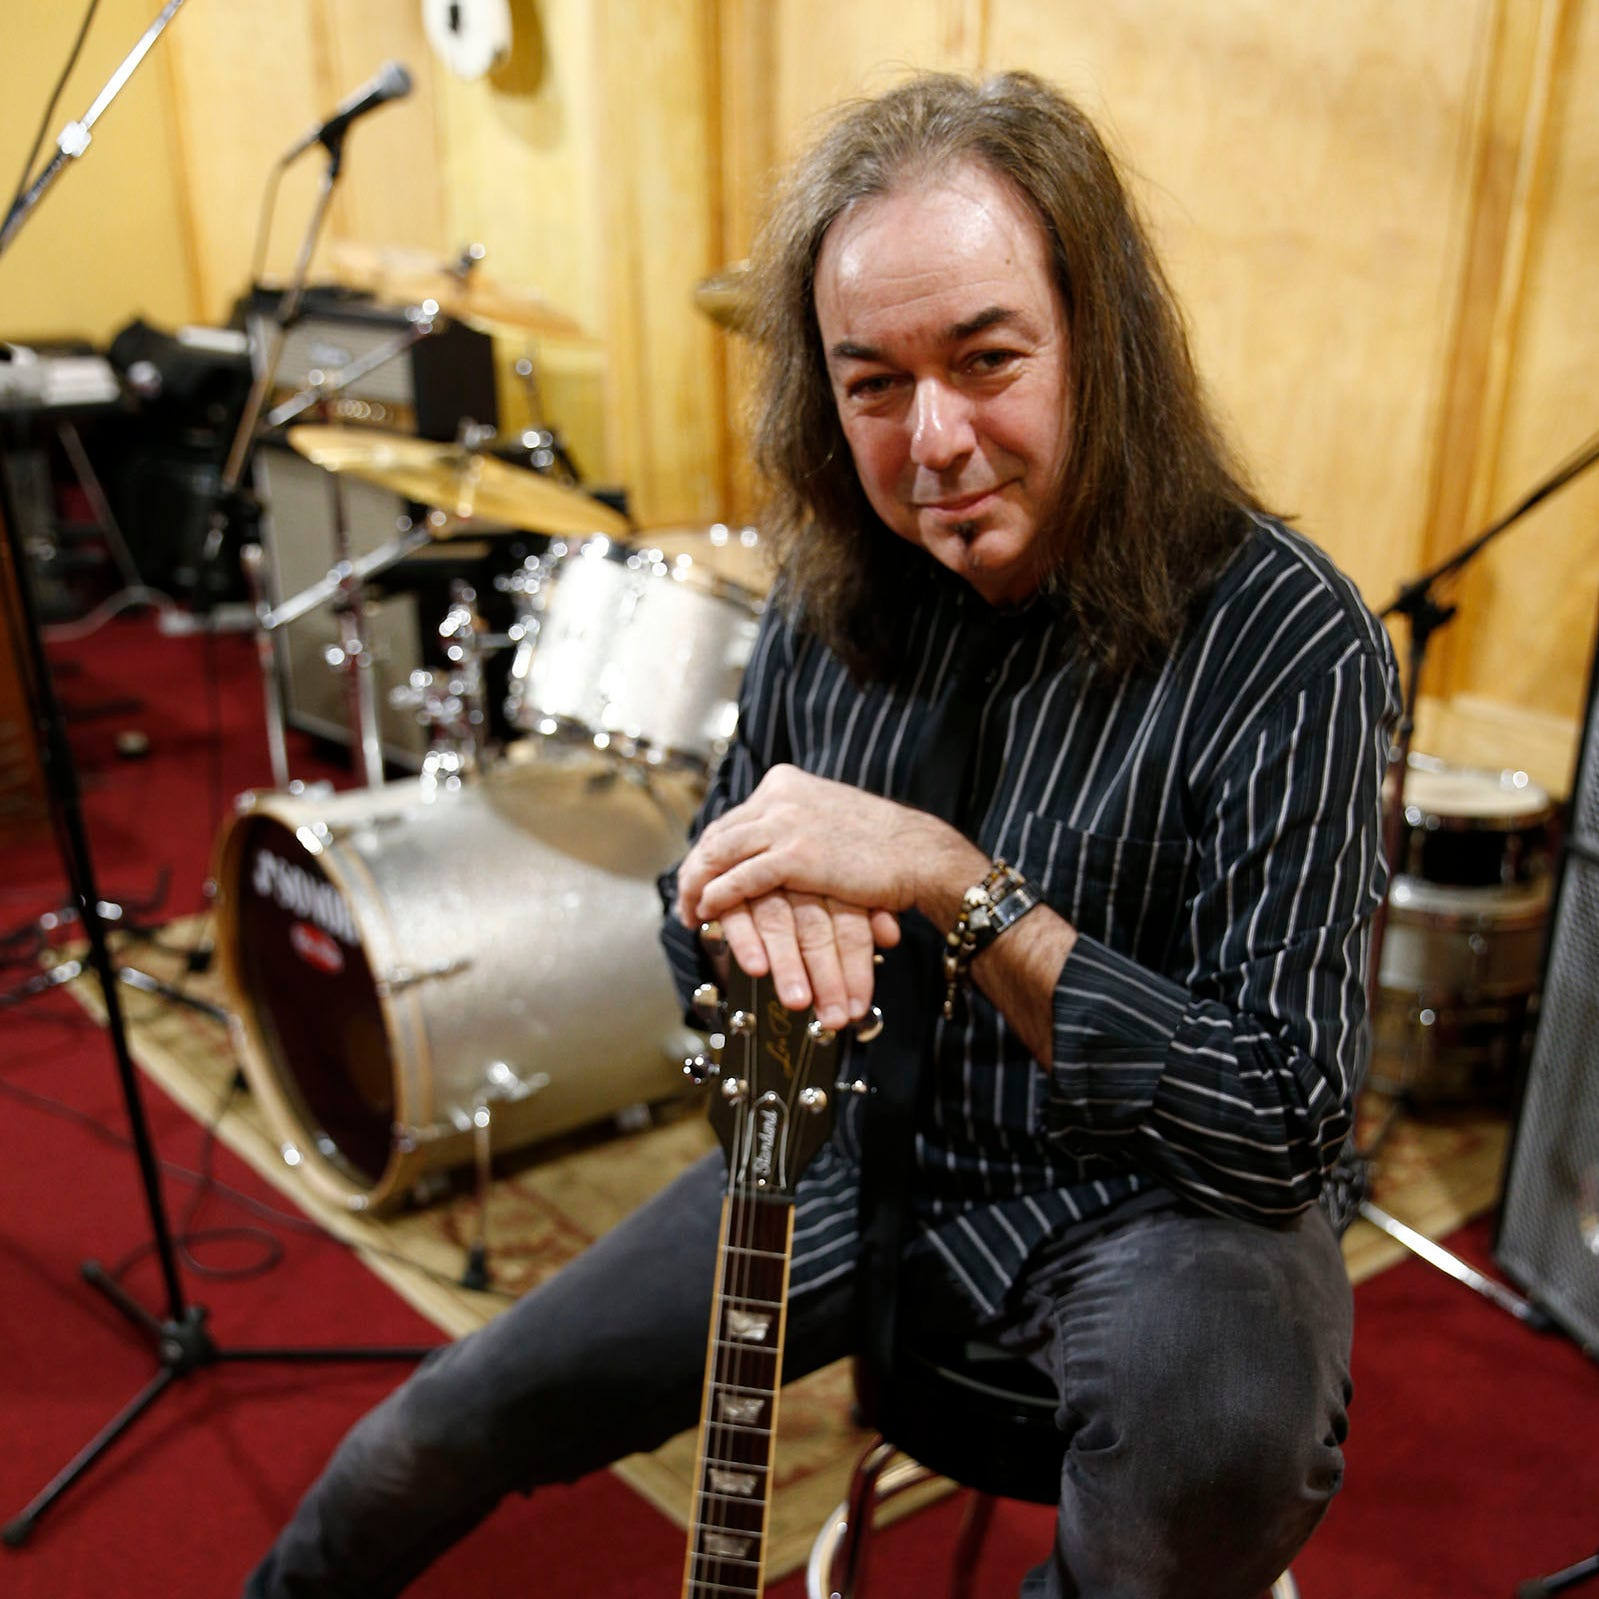 Absolute Music in Hazlet owner skipped Jimmy Page, Robert Plant tour to teach music